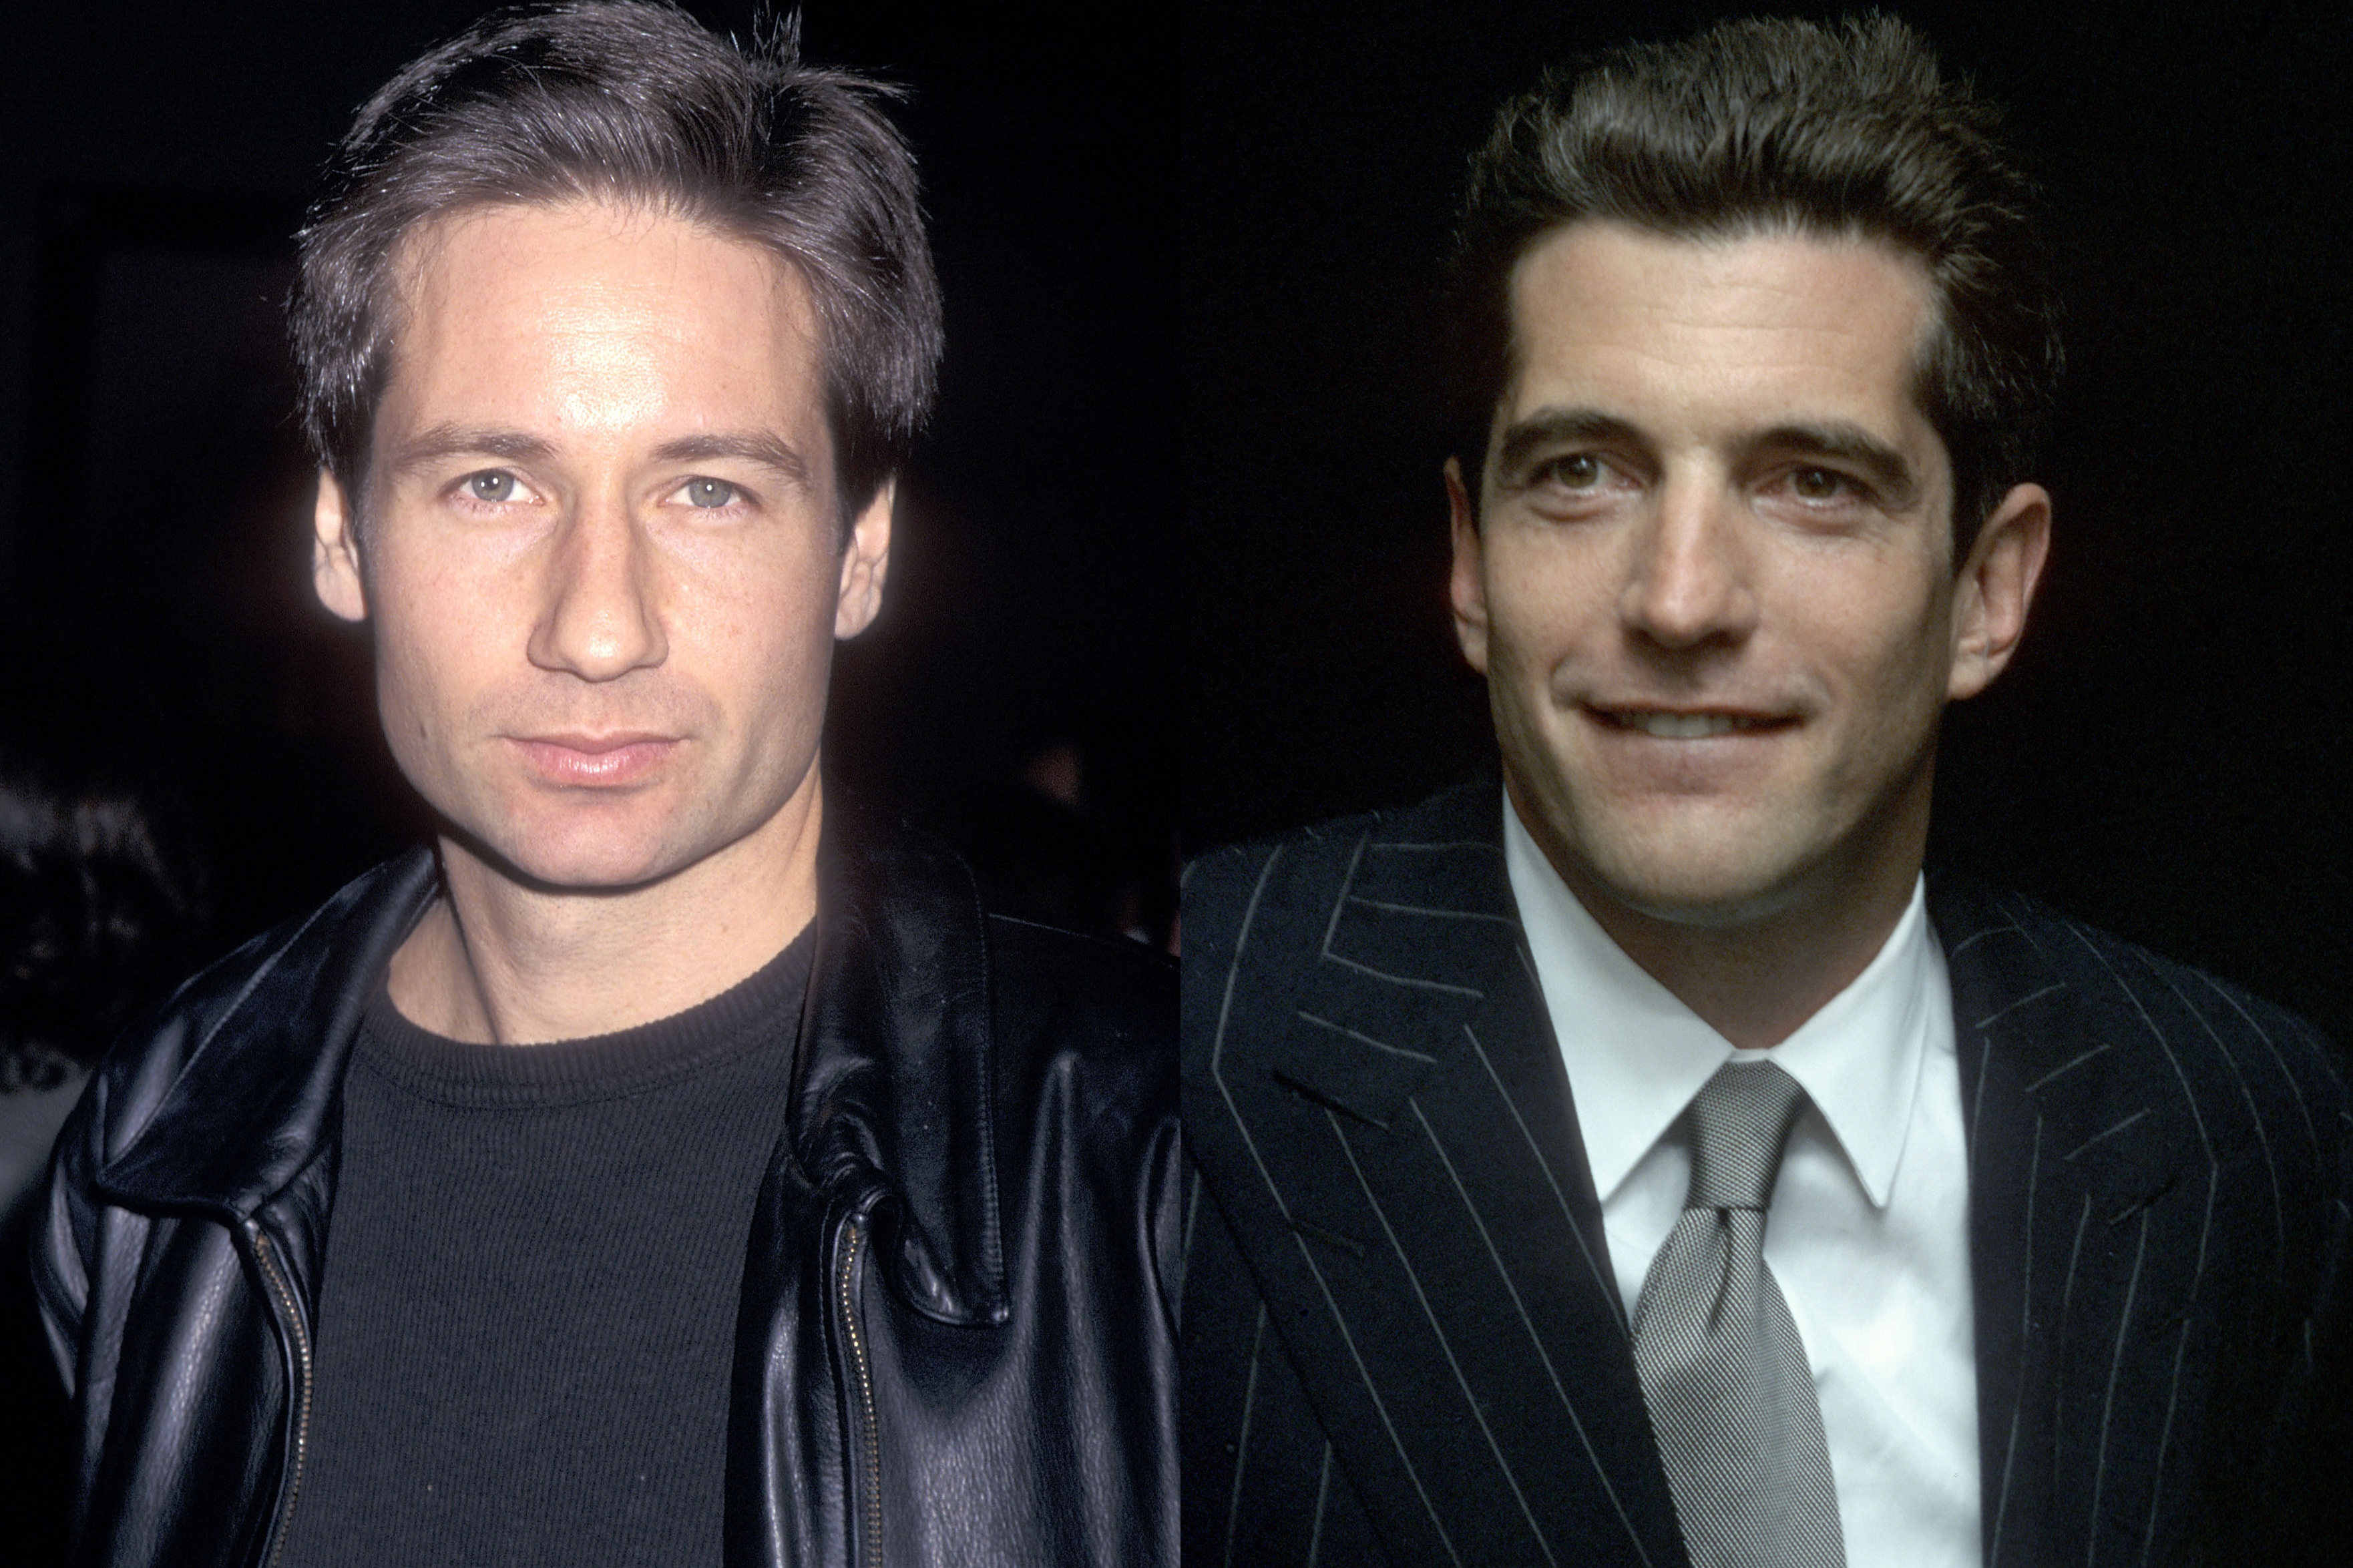 David Duchovny and JFK Jr. went to middle school together in New York City; Duchovny told Howard Stern that the two once roomed together on a class trip.